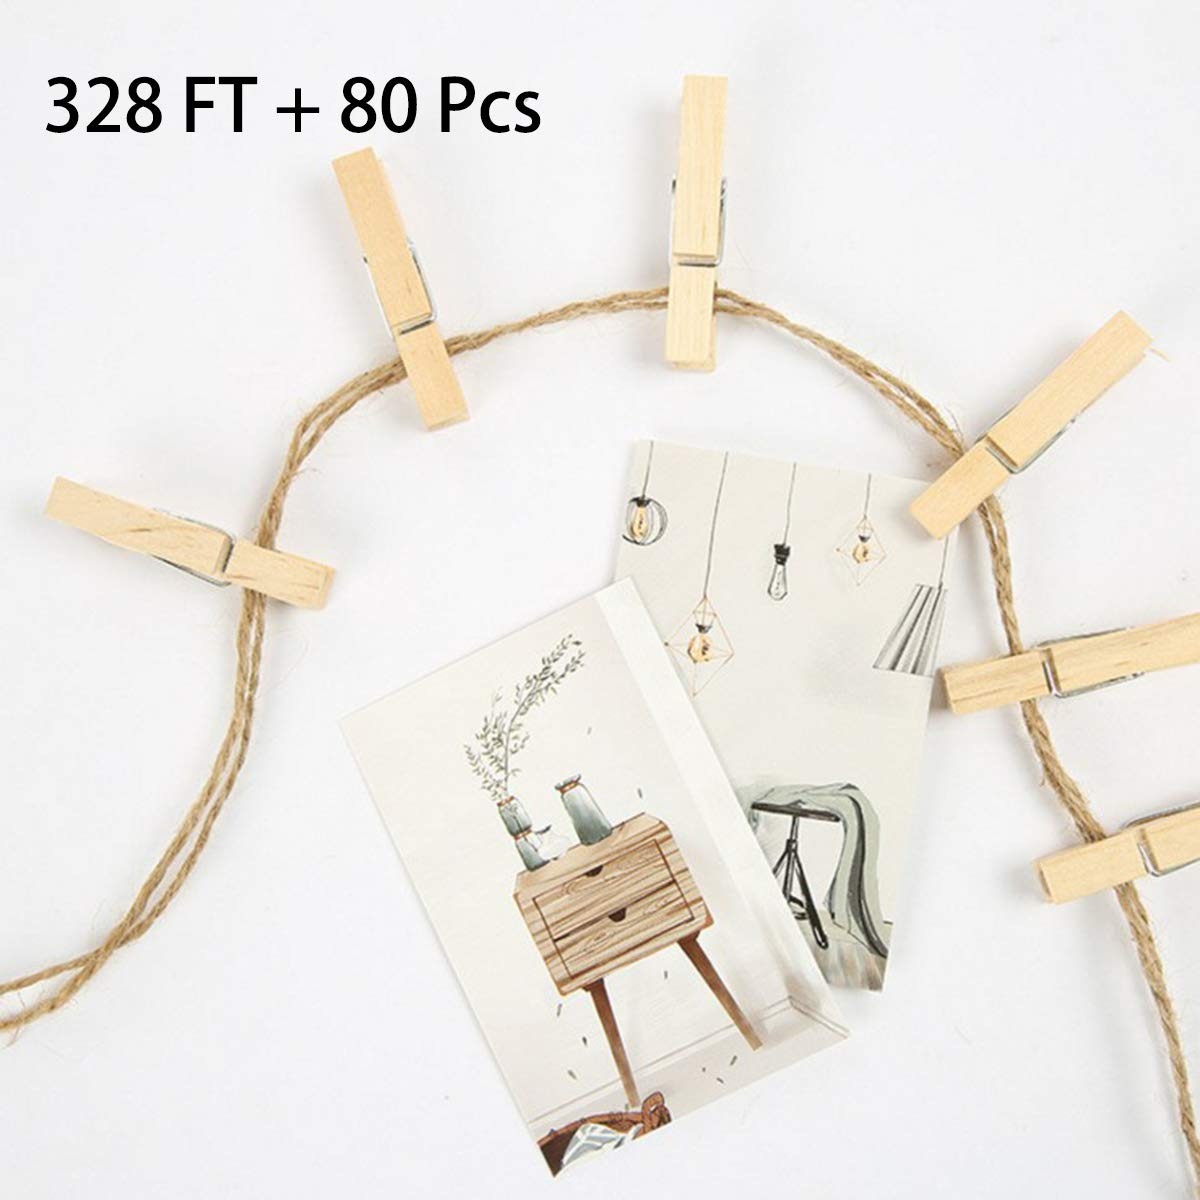 Jute Twine & Mini Clothespins Set, ZOUTOG 328 feet 3mm Natural Twine String with 80 PCS Wooden Clothespins for Picture Hanging/Art Craft/Photo Display